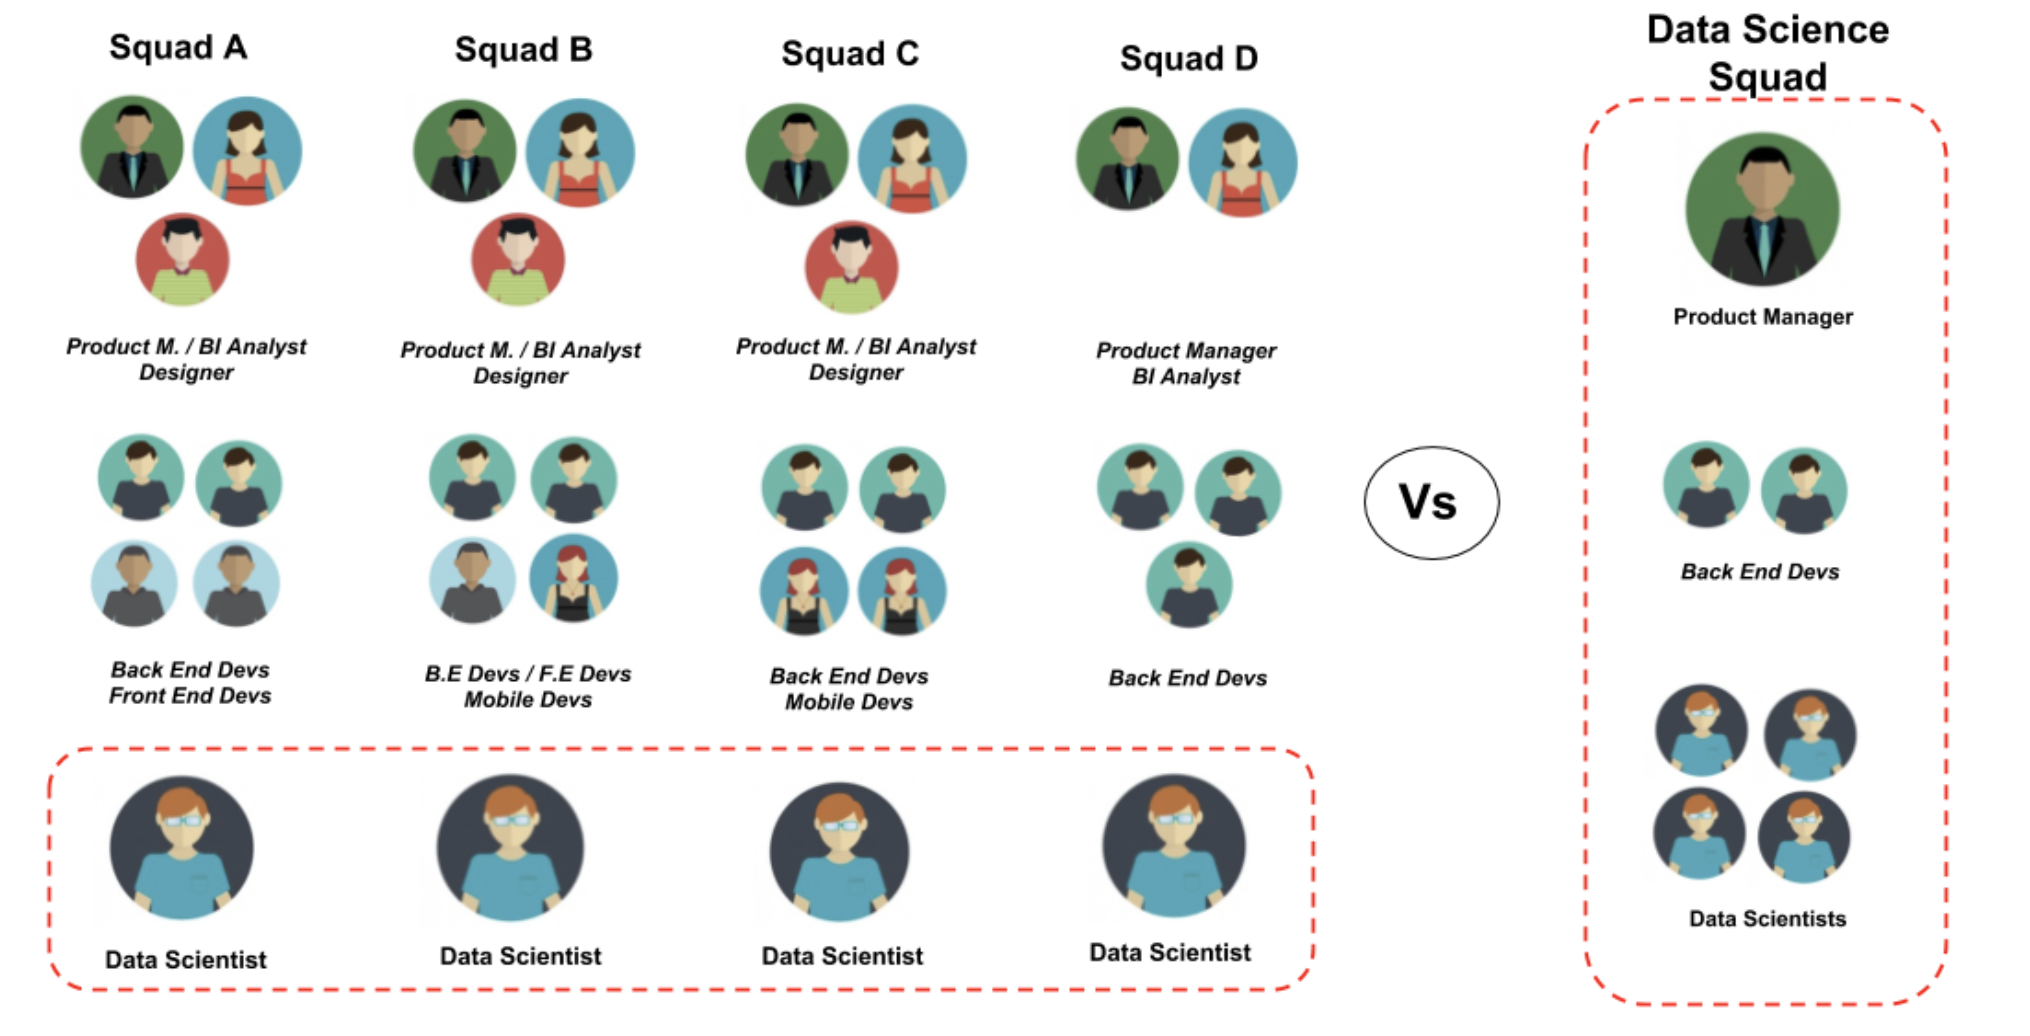 Creating a Multidisciplinary Data Science Squad: Upsides and Challenges